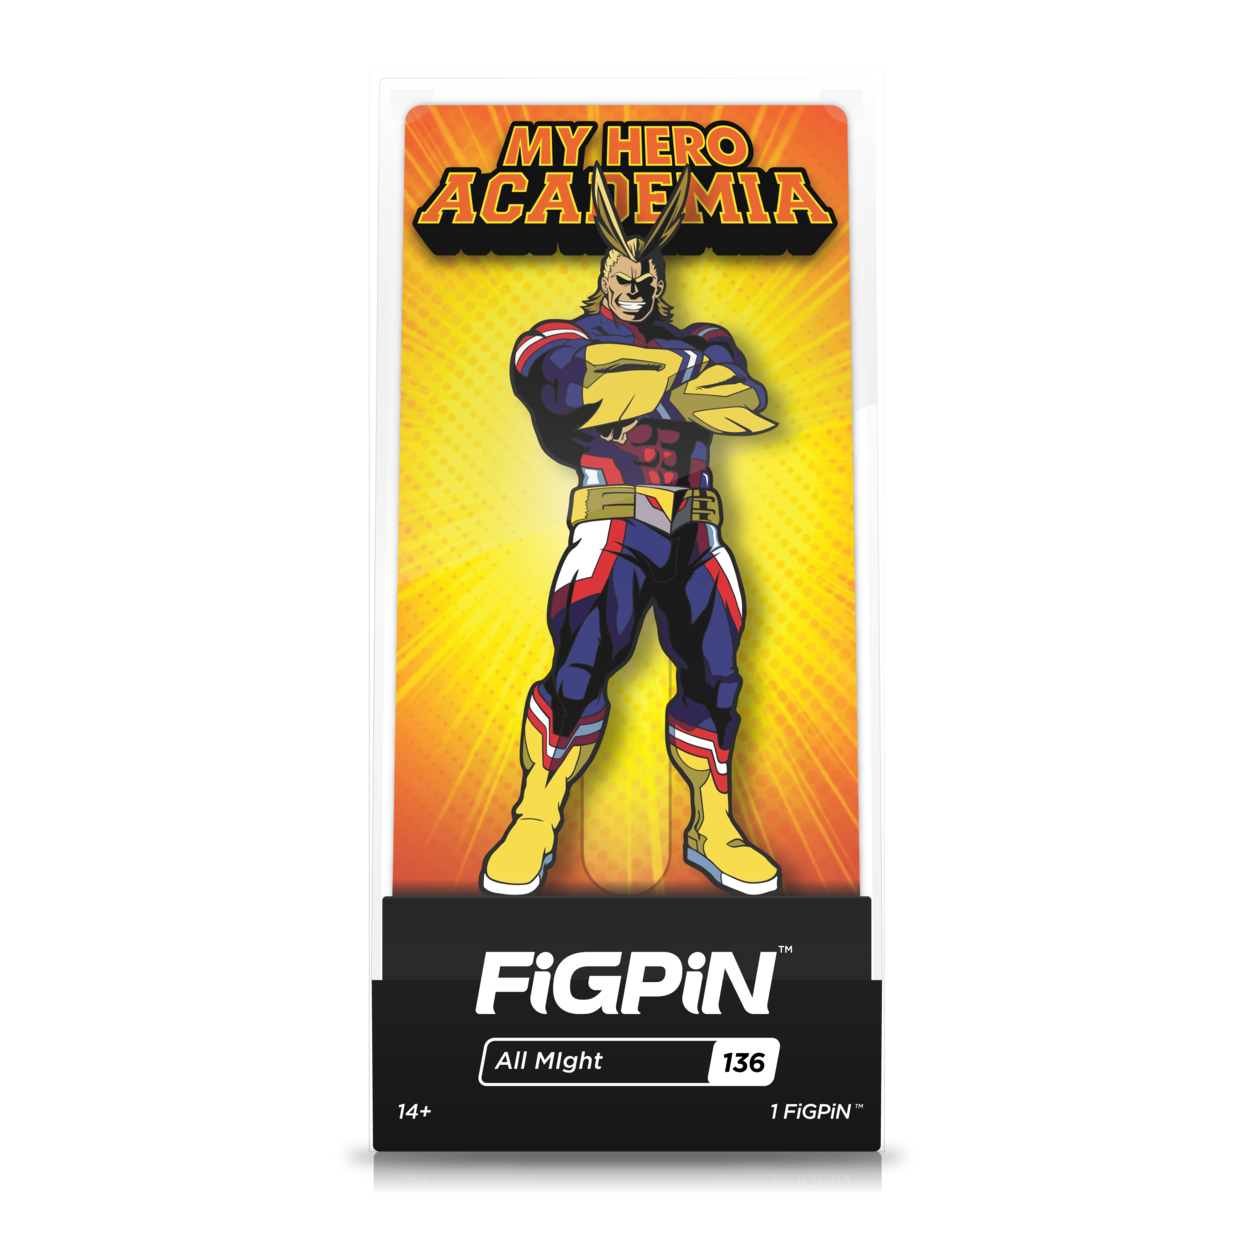 My Hero Academia: FiGPiN Enamel Pin All Might [136]